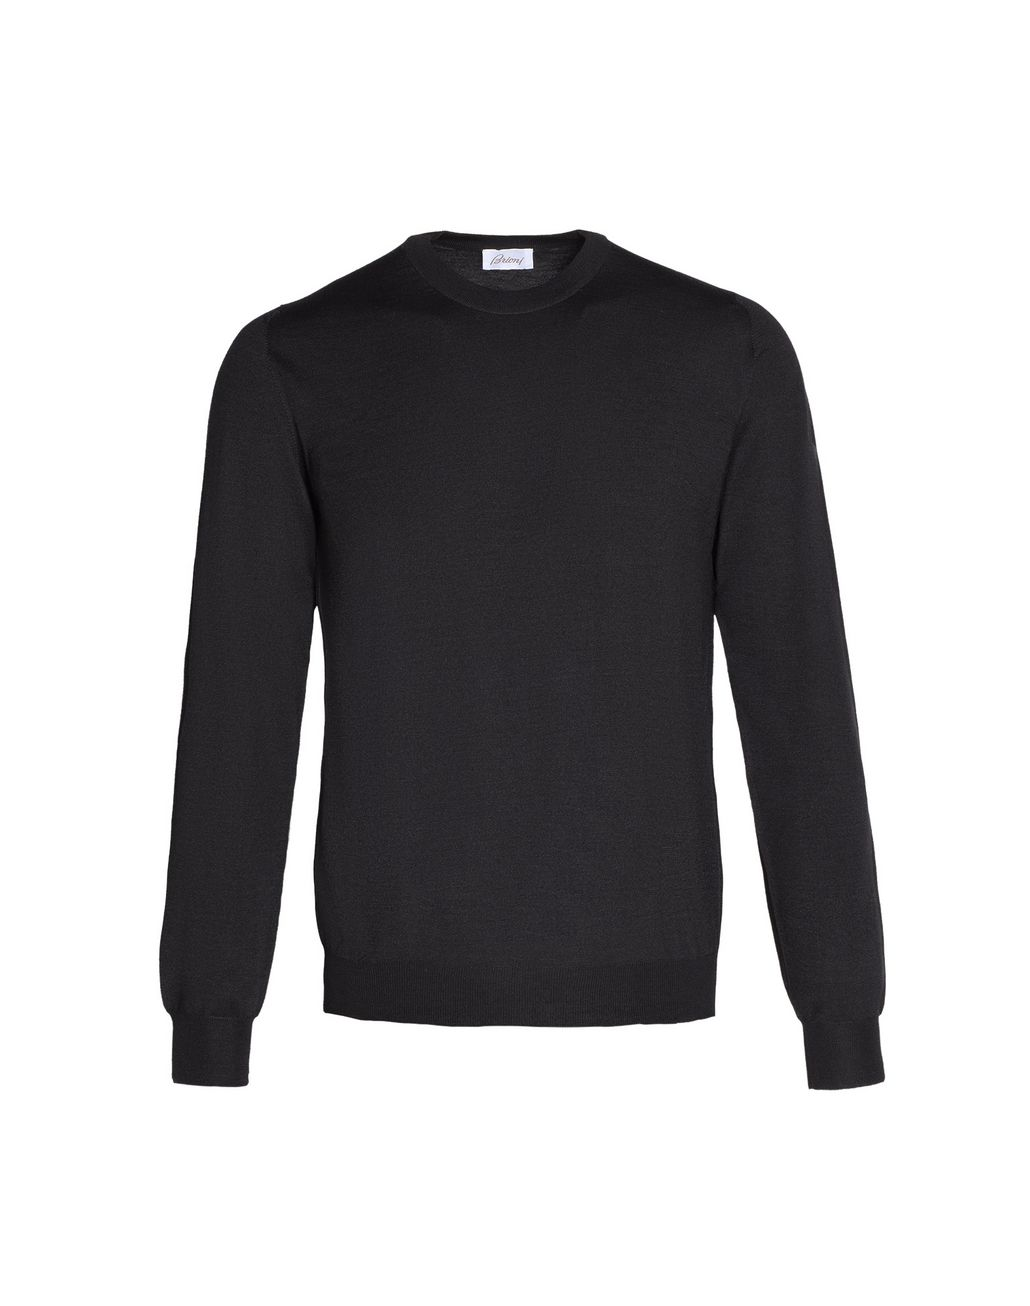 BRIONI Black Crew-Neck Sweater Knitwear Man f